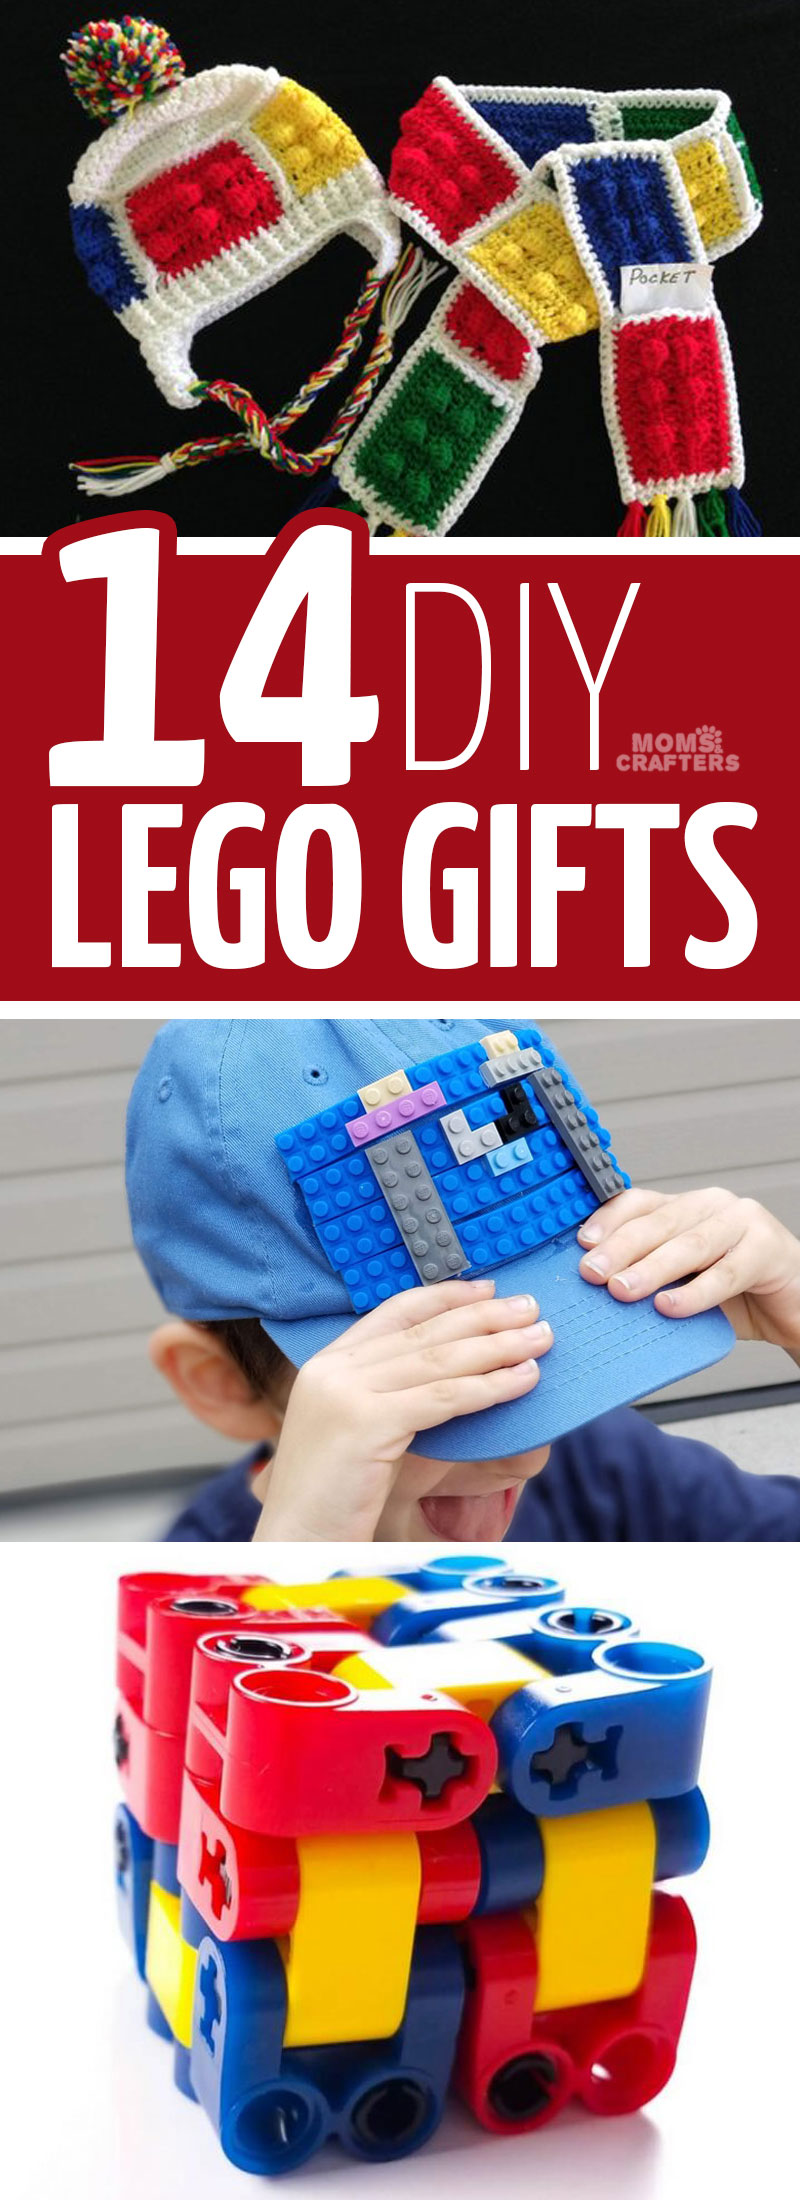 Click for 14 cool DIY lego gifts that you can craft on your own! These LEGO crafts using old bricks, and LEGO themed gift idas are perfect for teenagers, boys, girls, and preschoolers. #lego